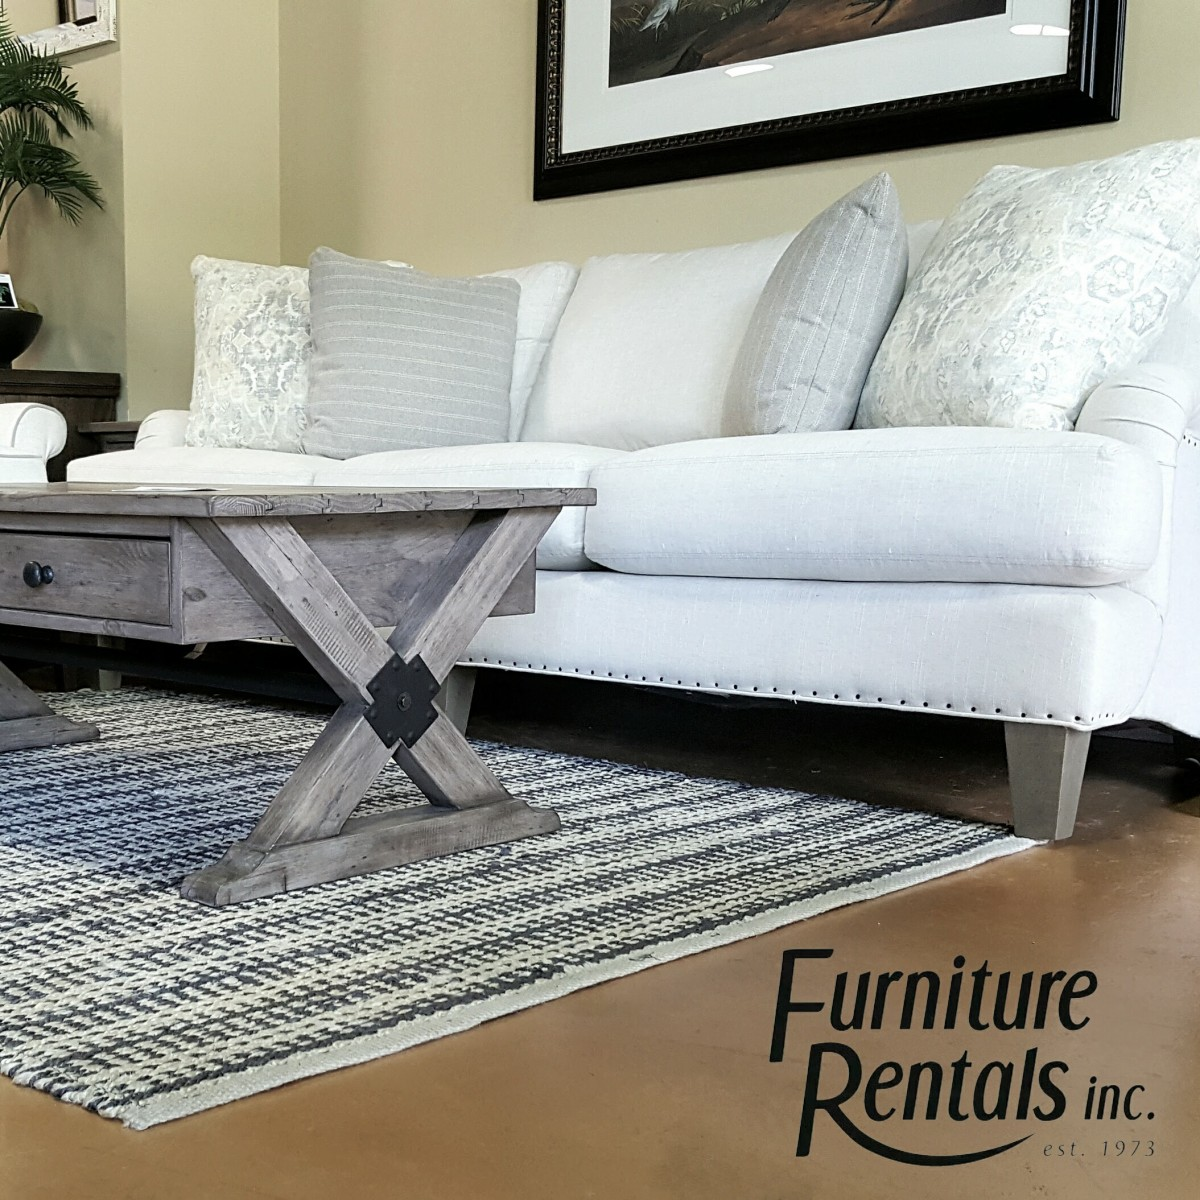 James Island Furniture Rentals